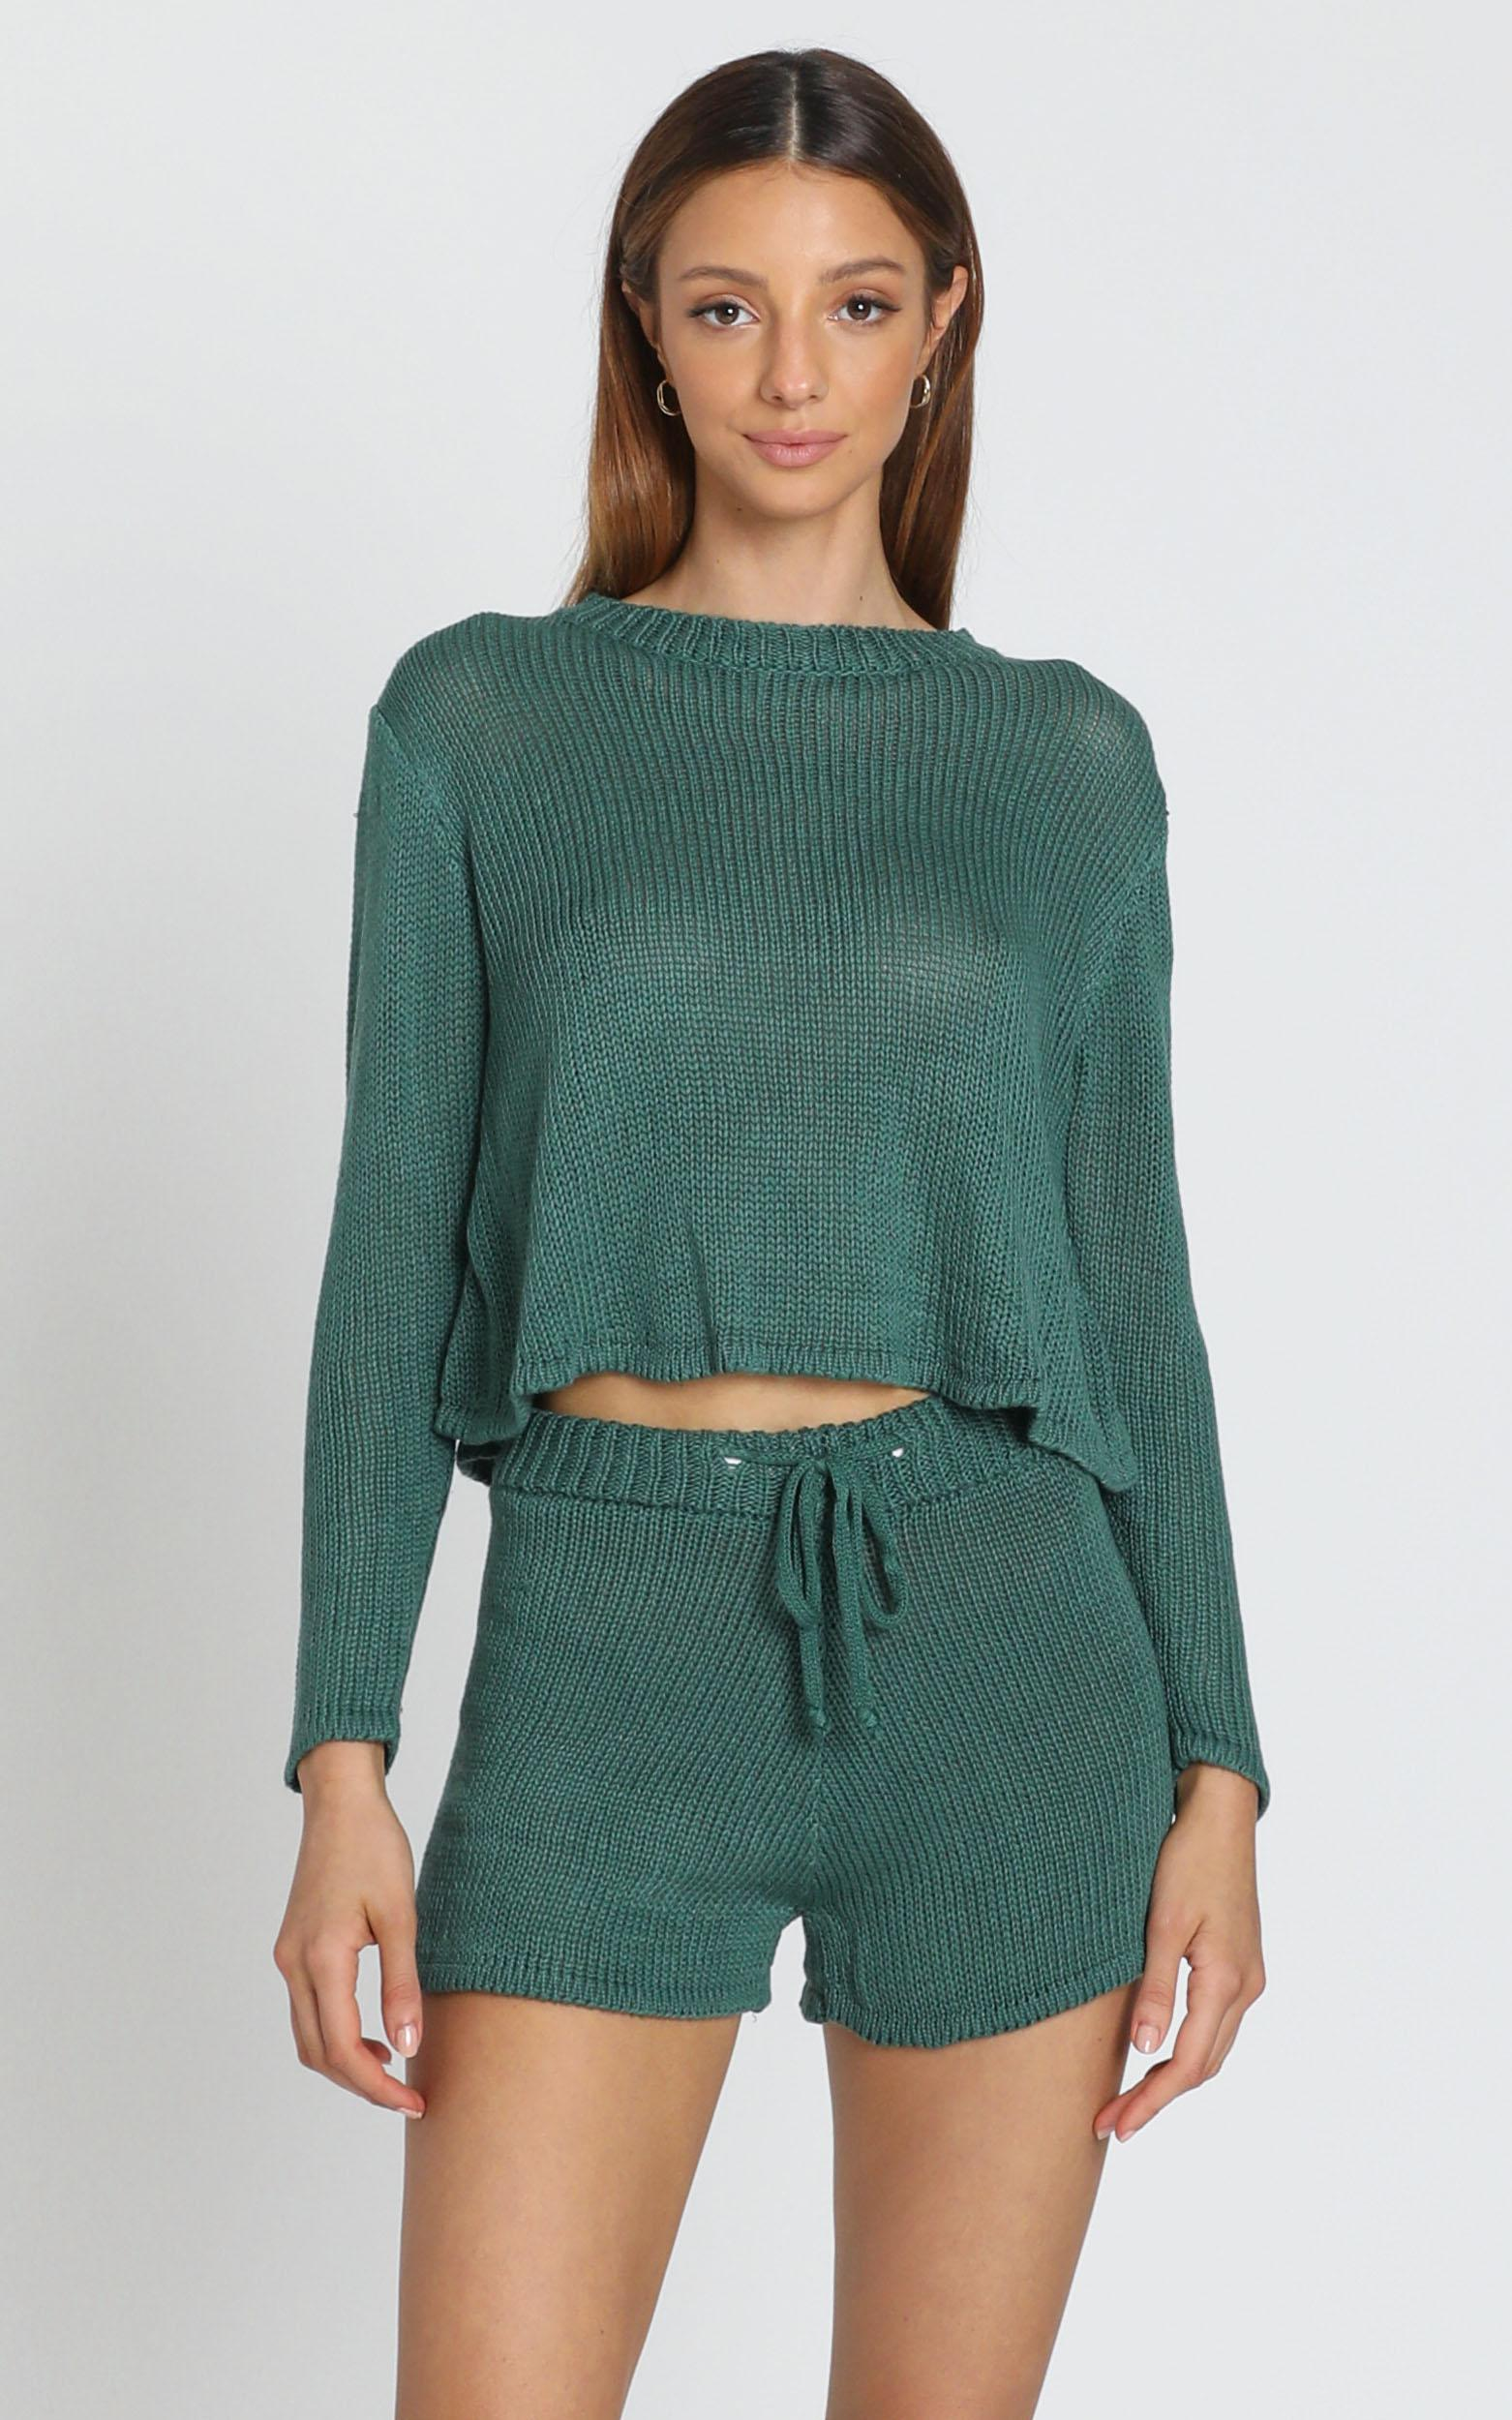 Lenka Knit two piece set in Emerald - S, Green, hi-res image number null